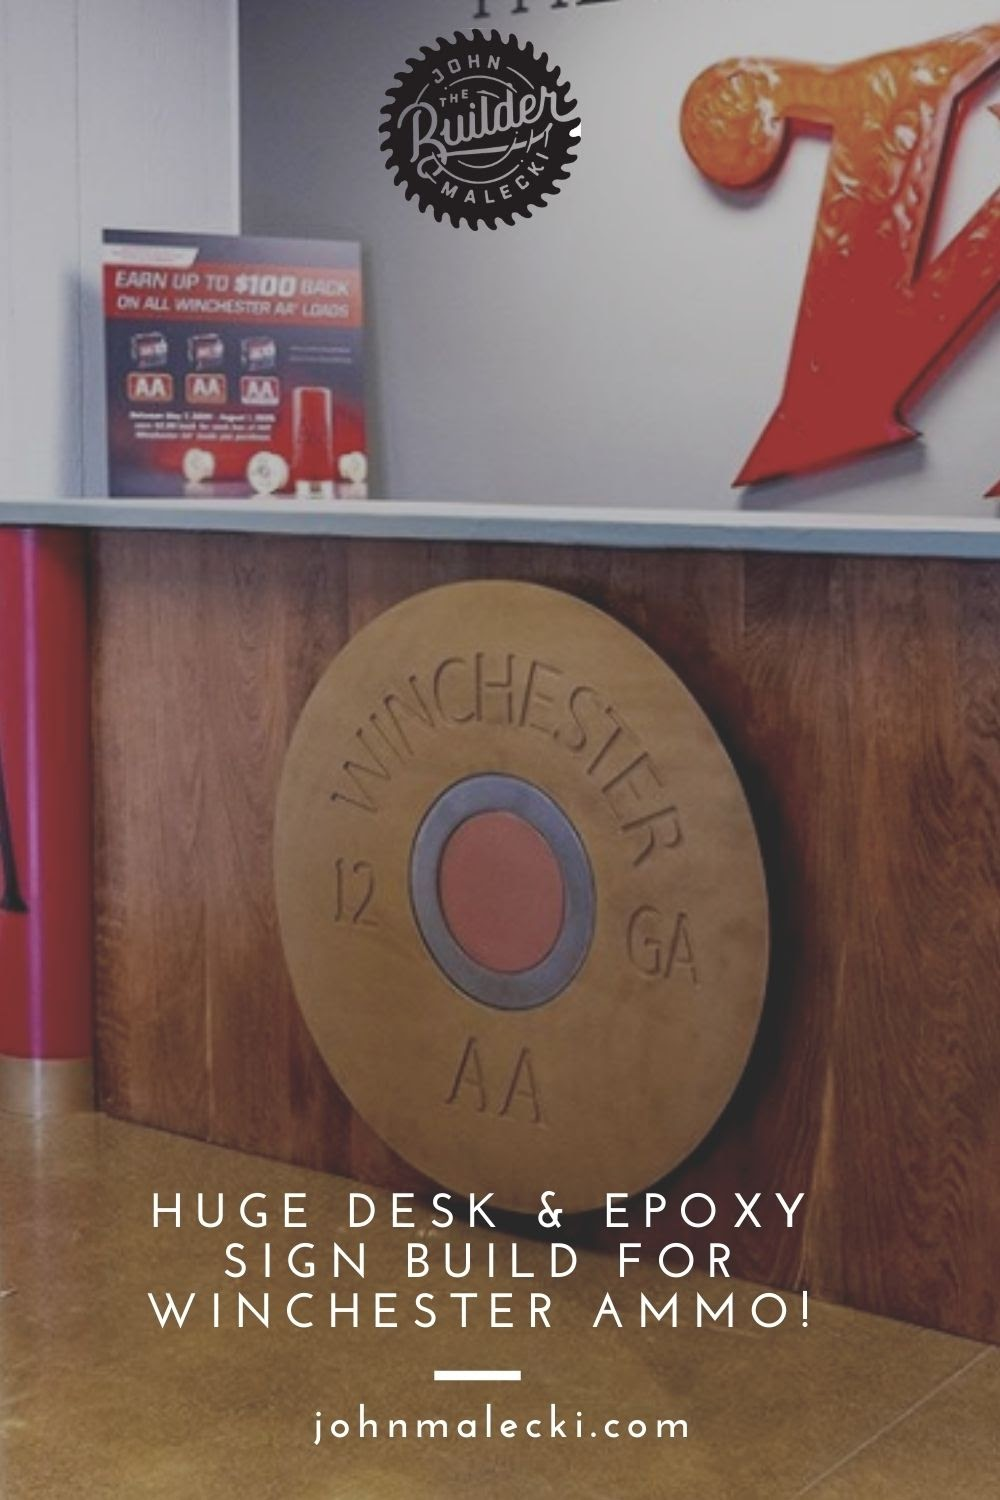 HUGE Desk & EPOXY Sign Build for WINCHESTER AMMO